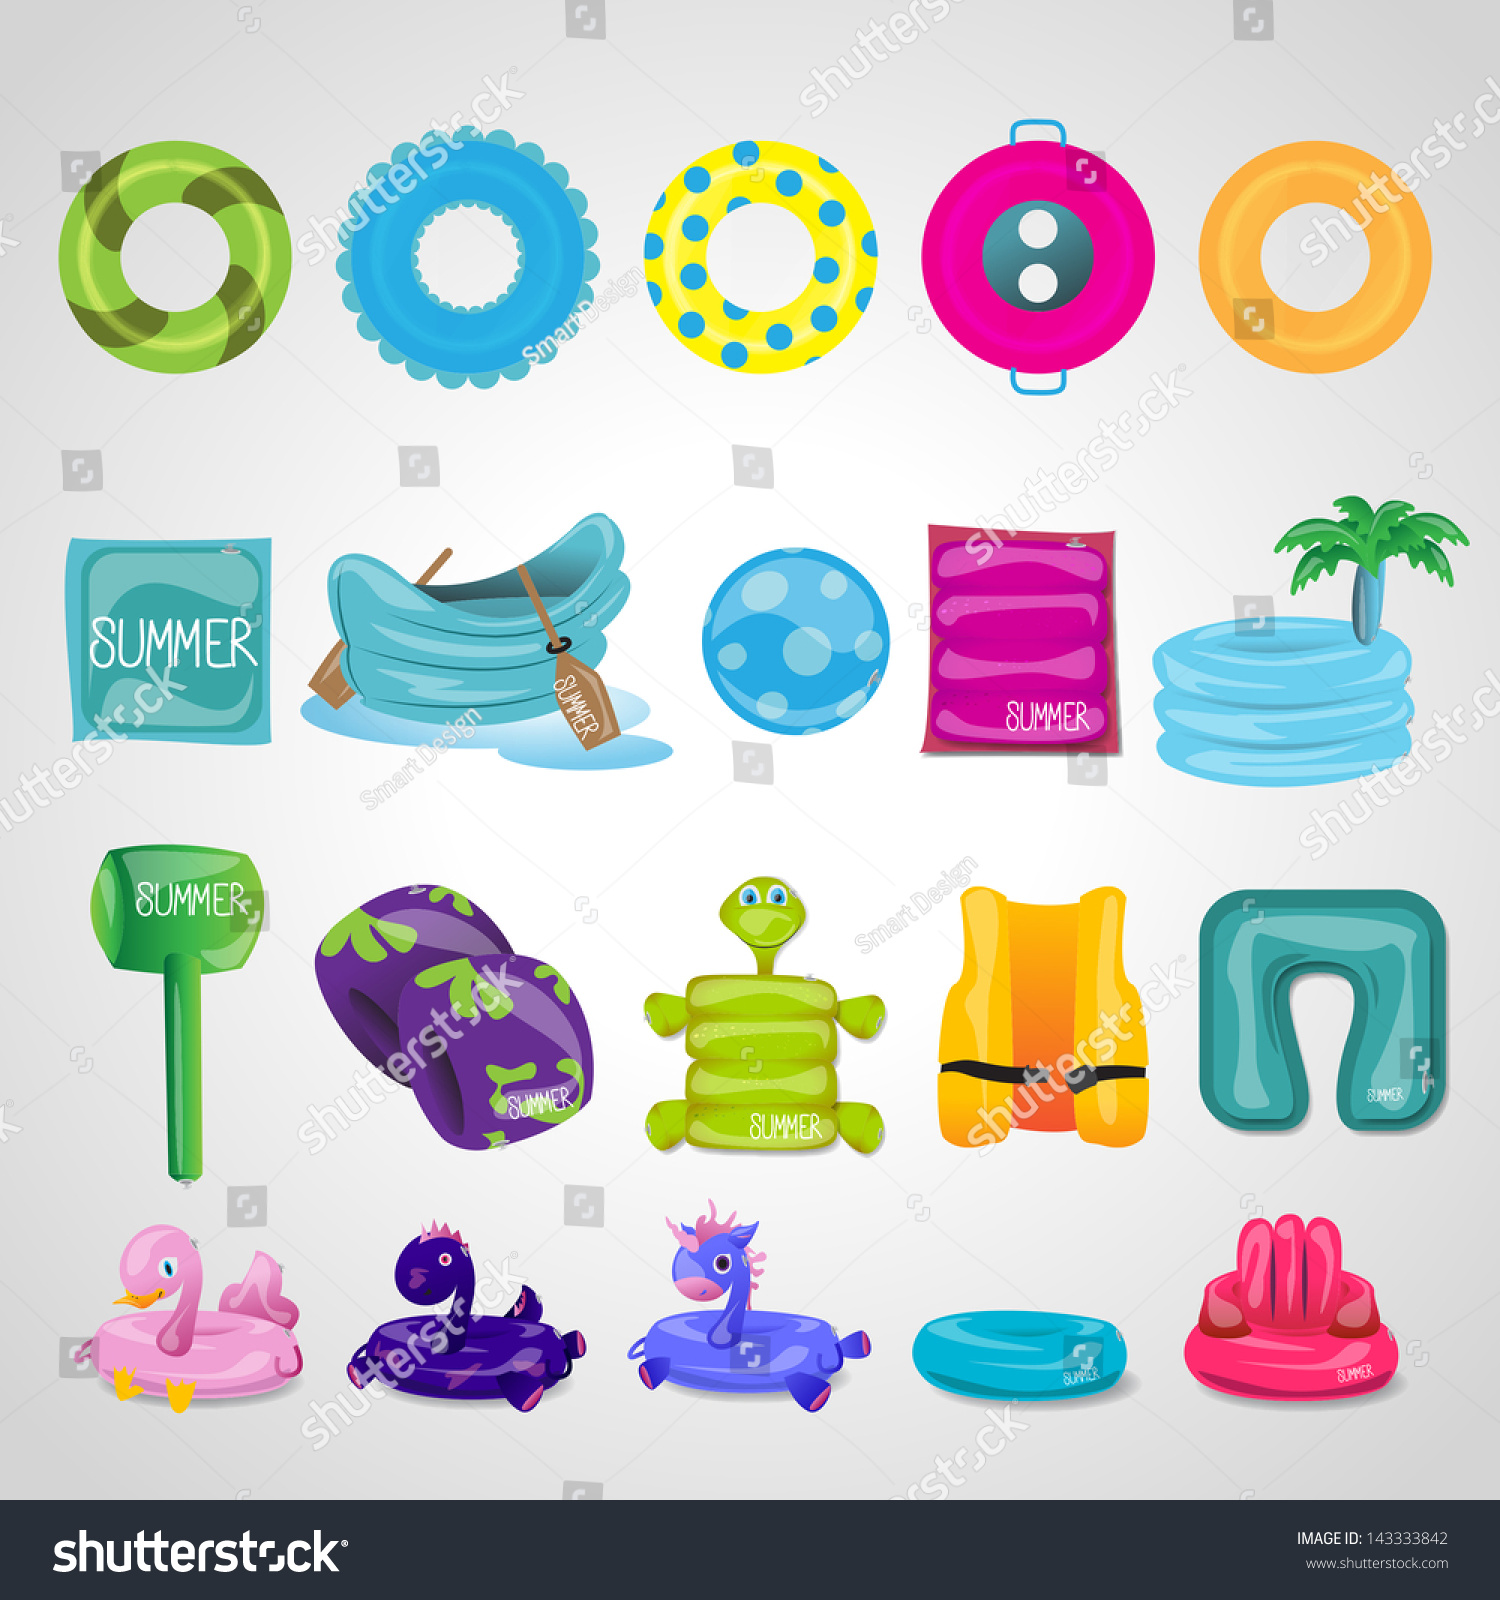 Inflatable Round Tube Icons Set Isolated Stock Vector